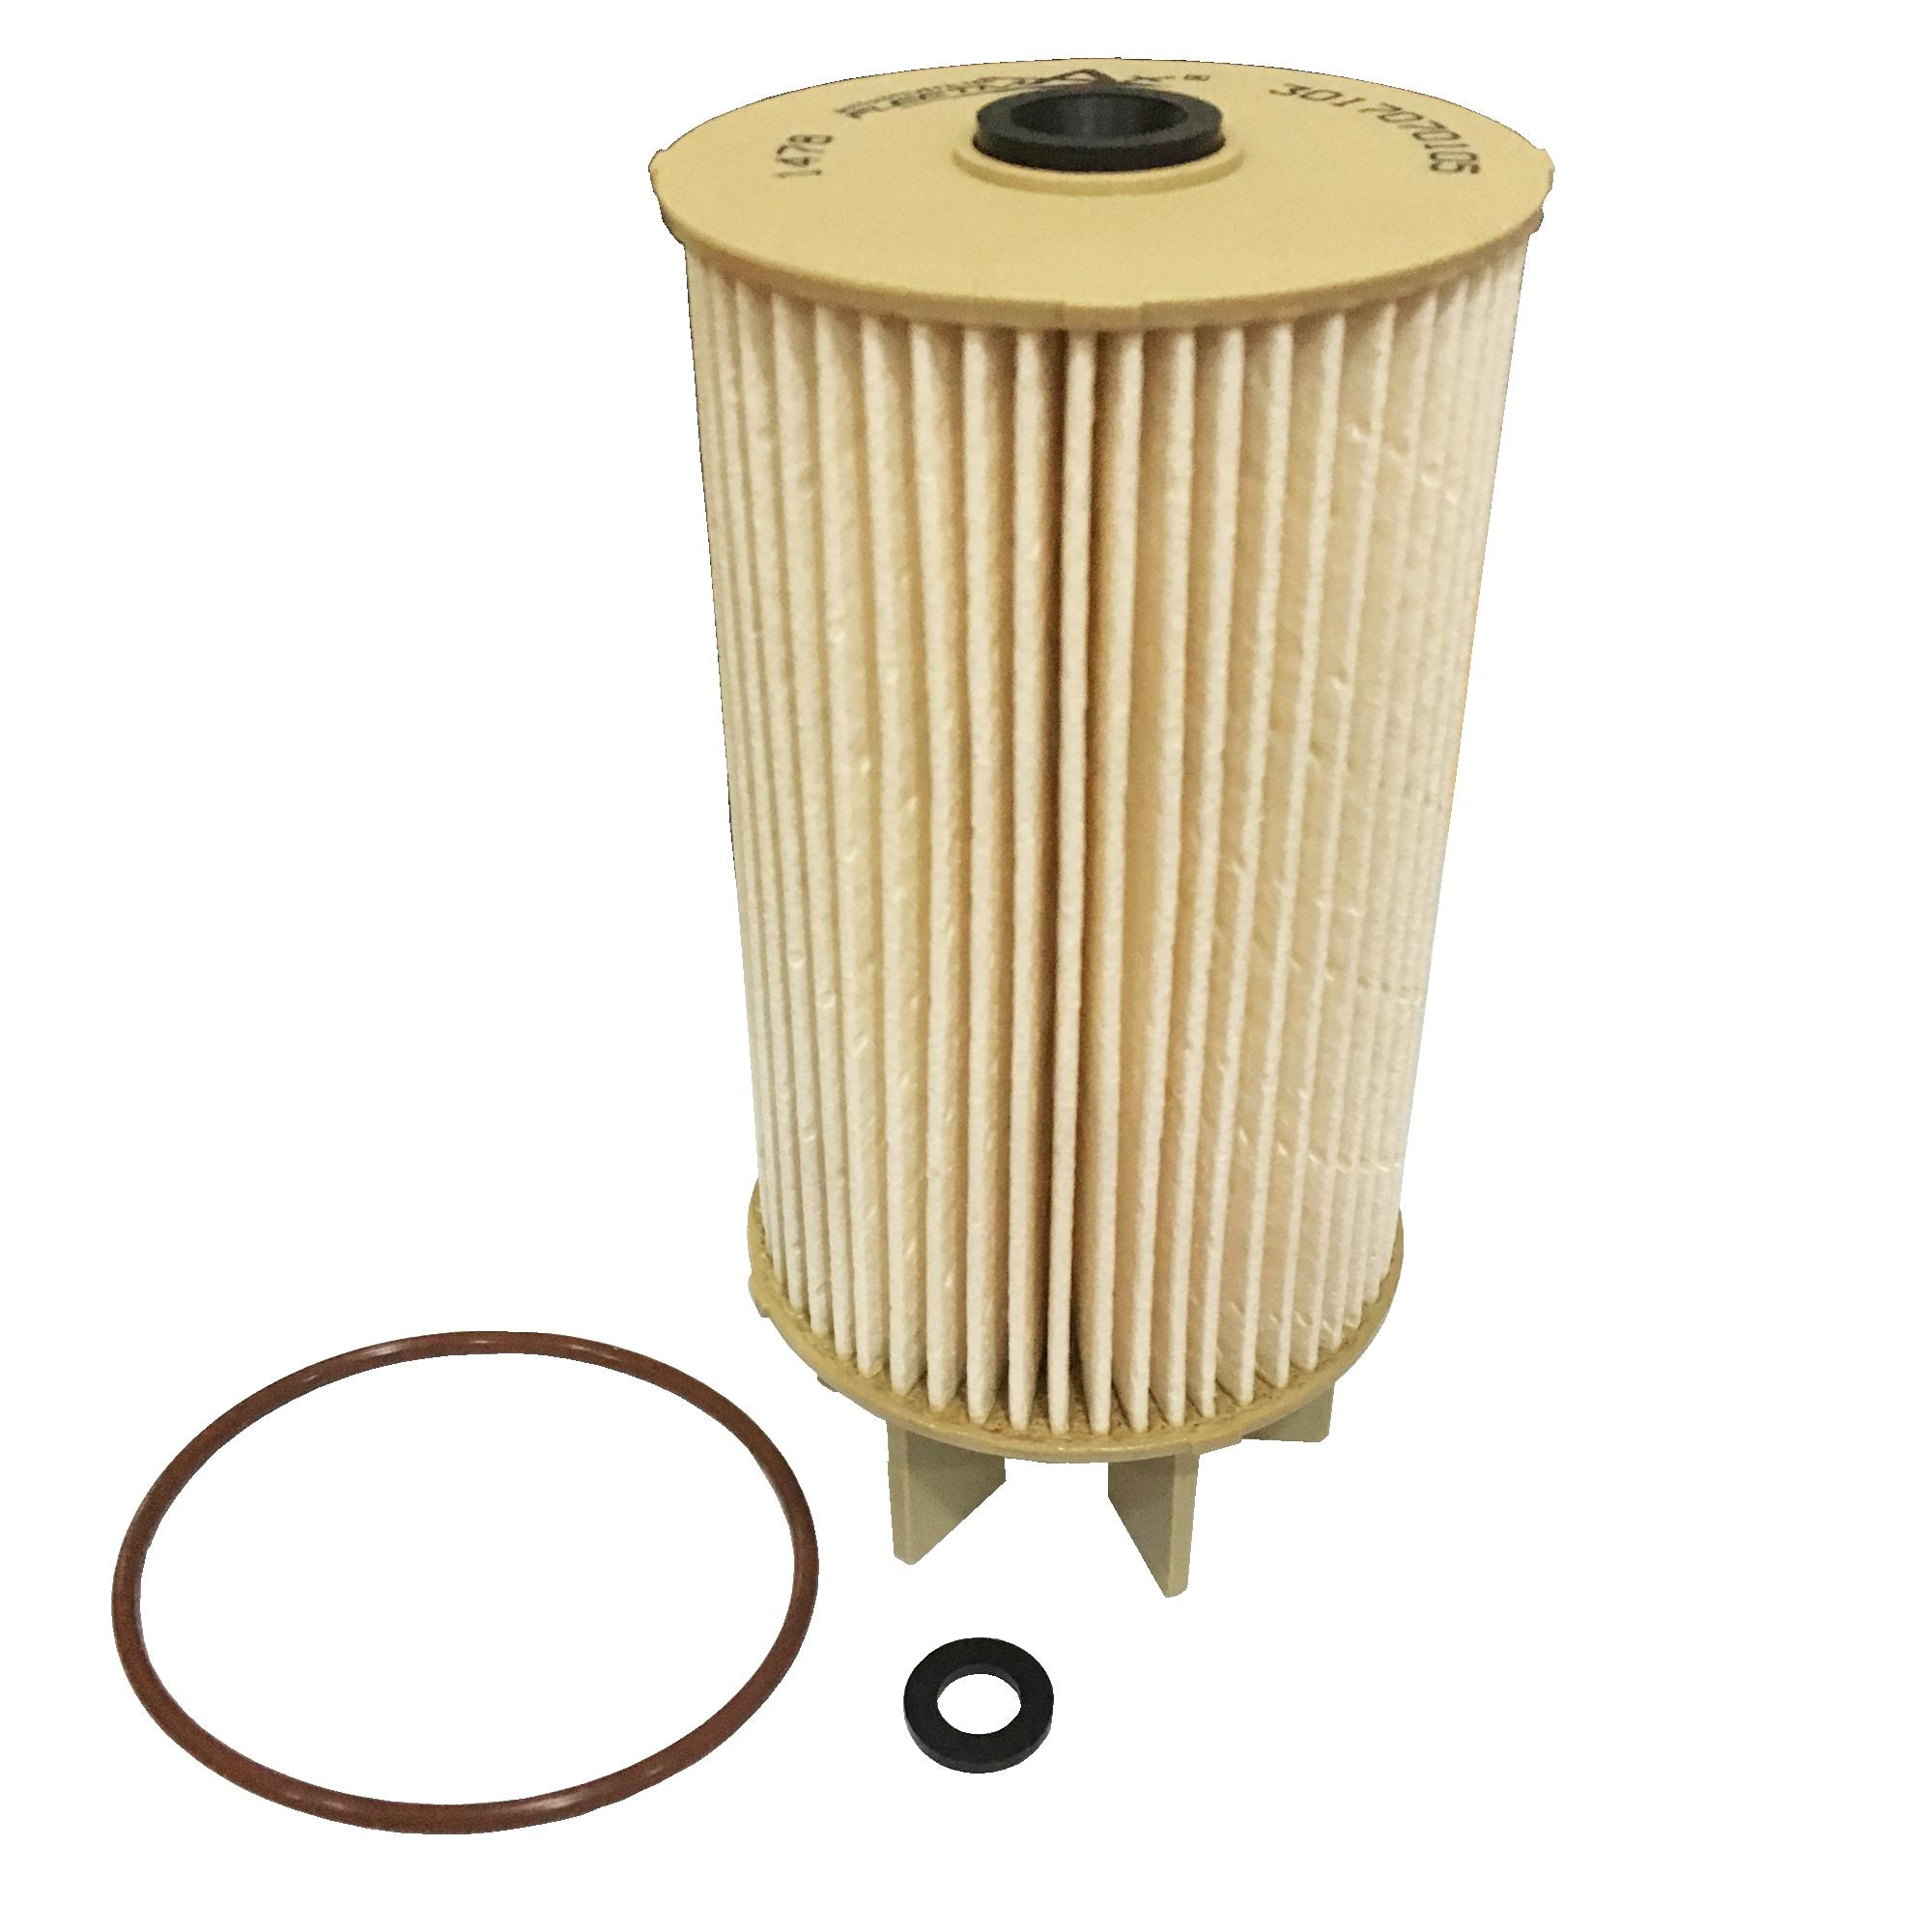 Fuel Filter For Sale Gas Online Brands Prices Reviews In 2003 Kia Sorento Fleetmax Navara Np300 2015 2018